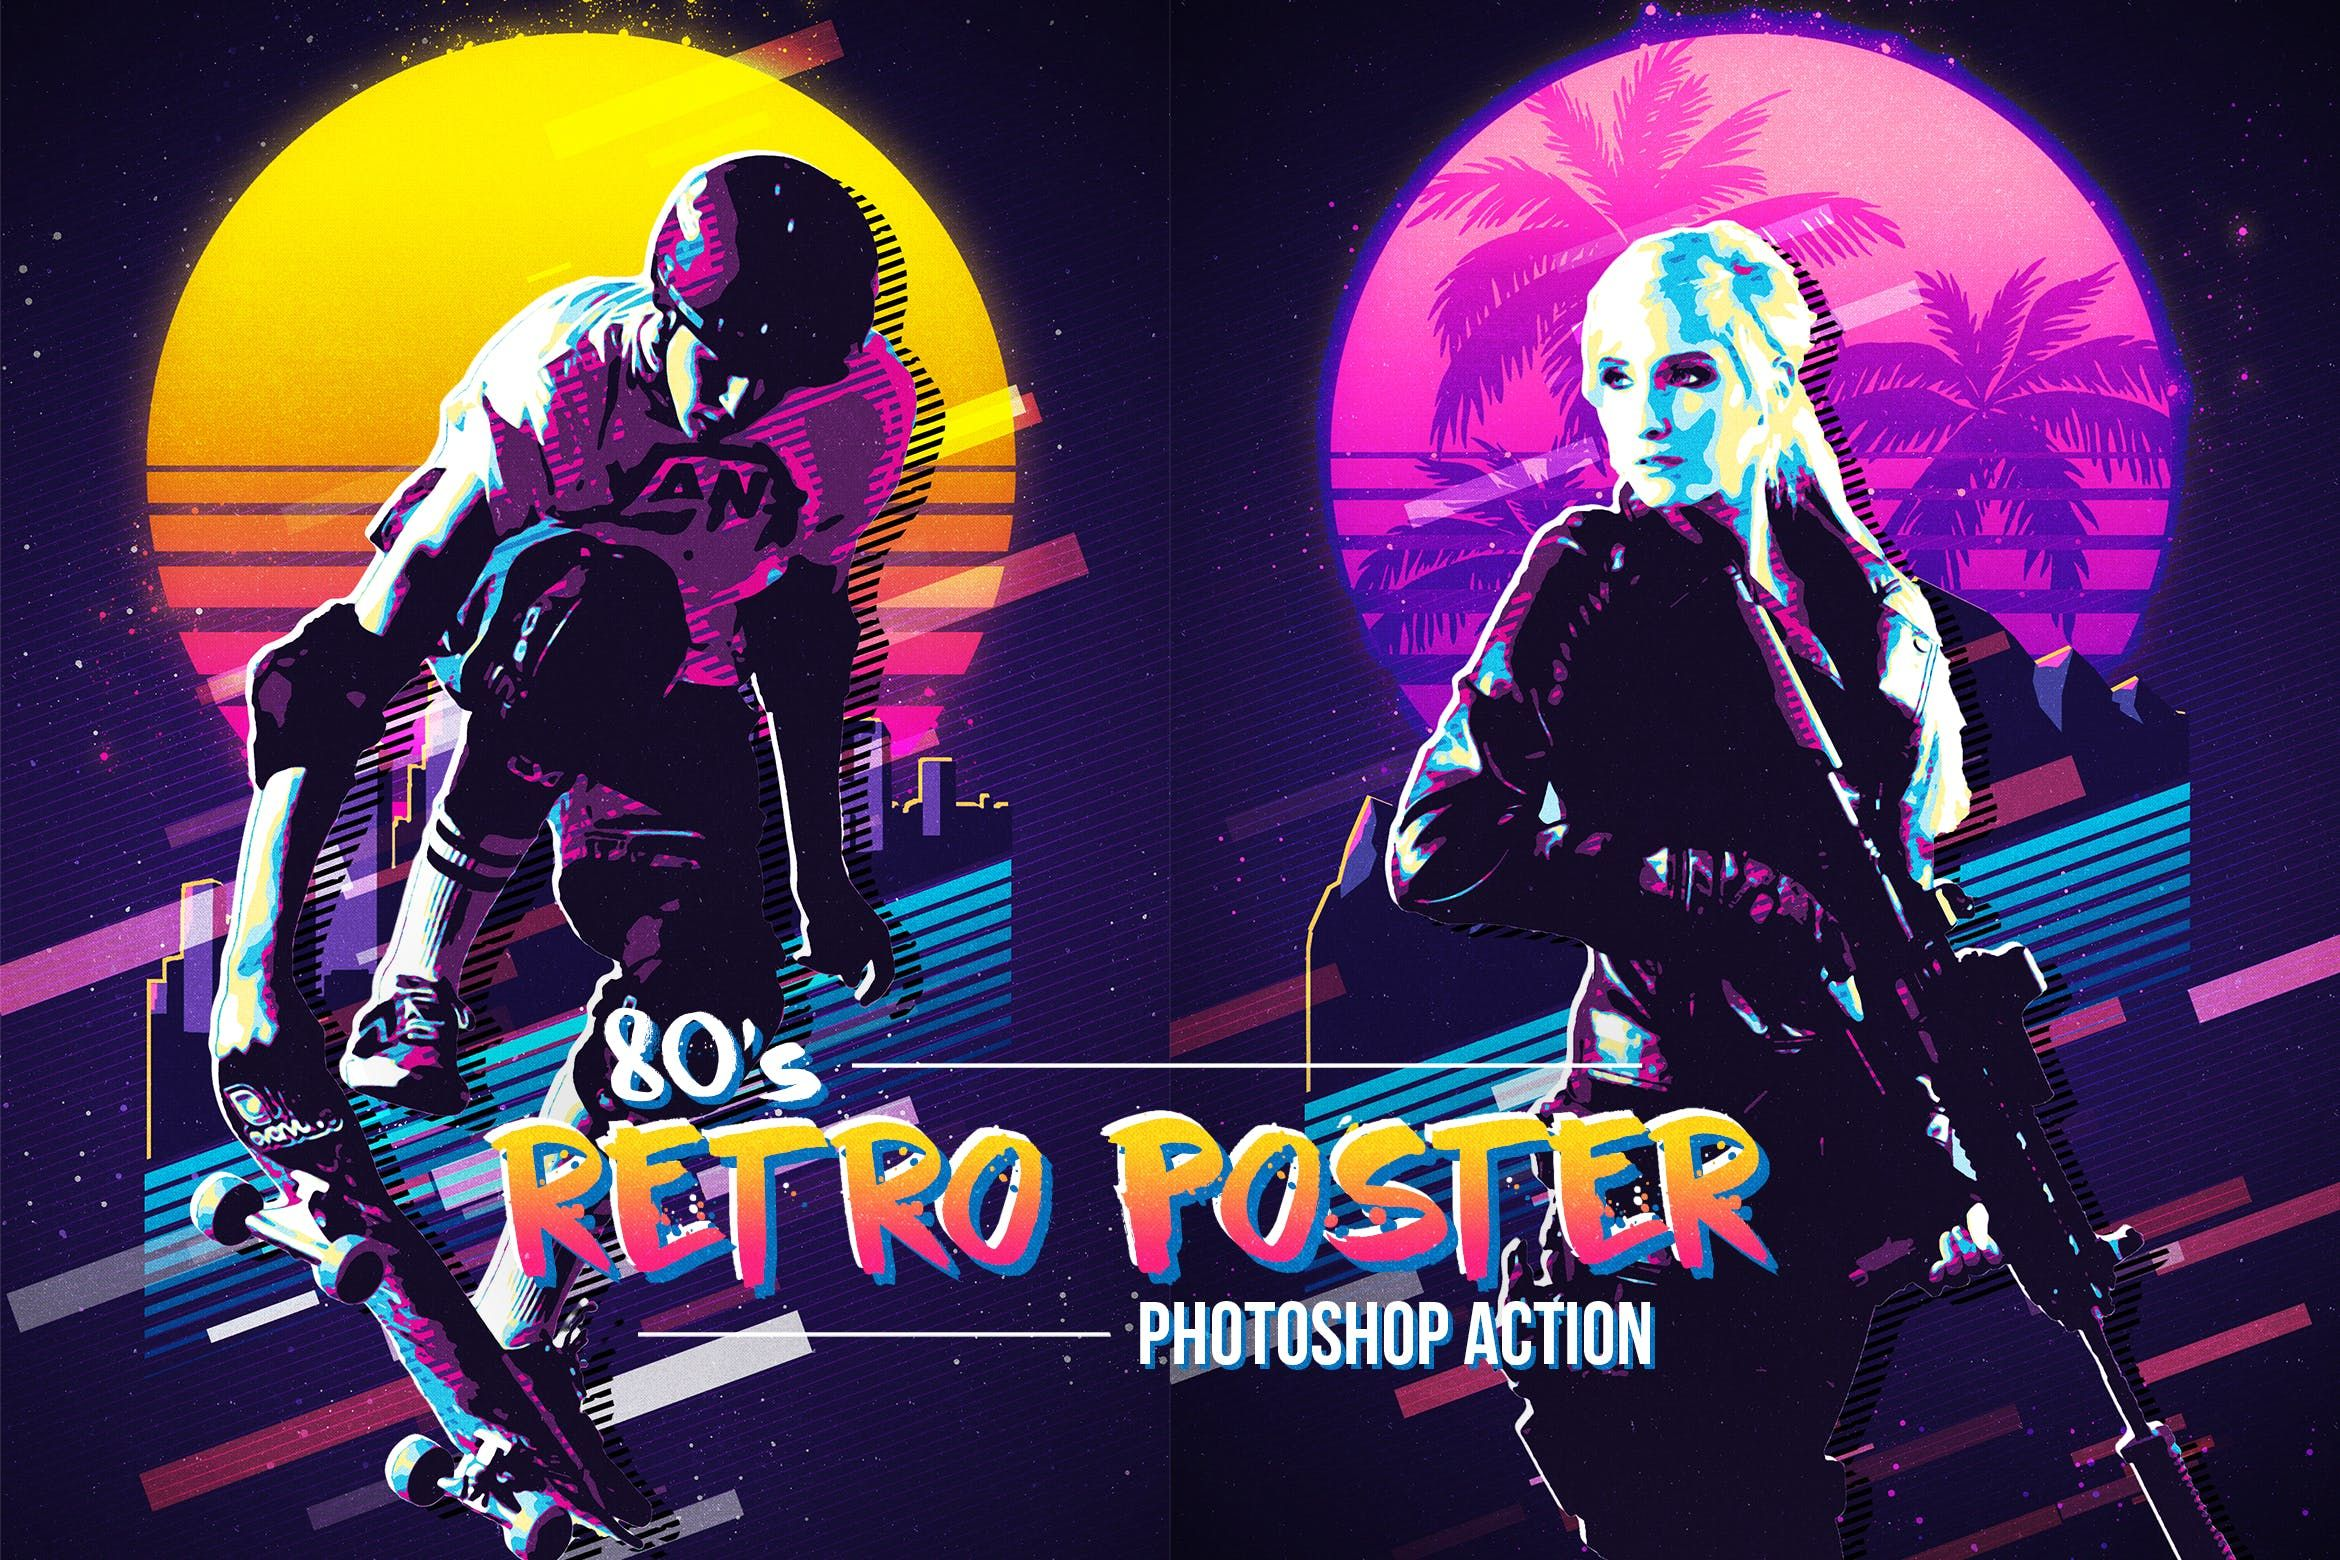 80s retro poster photoshop action artistic artwork 80s 90s retro poster flyer illustration vibrant fancy design party collage